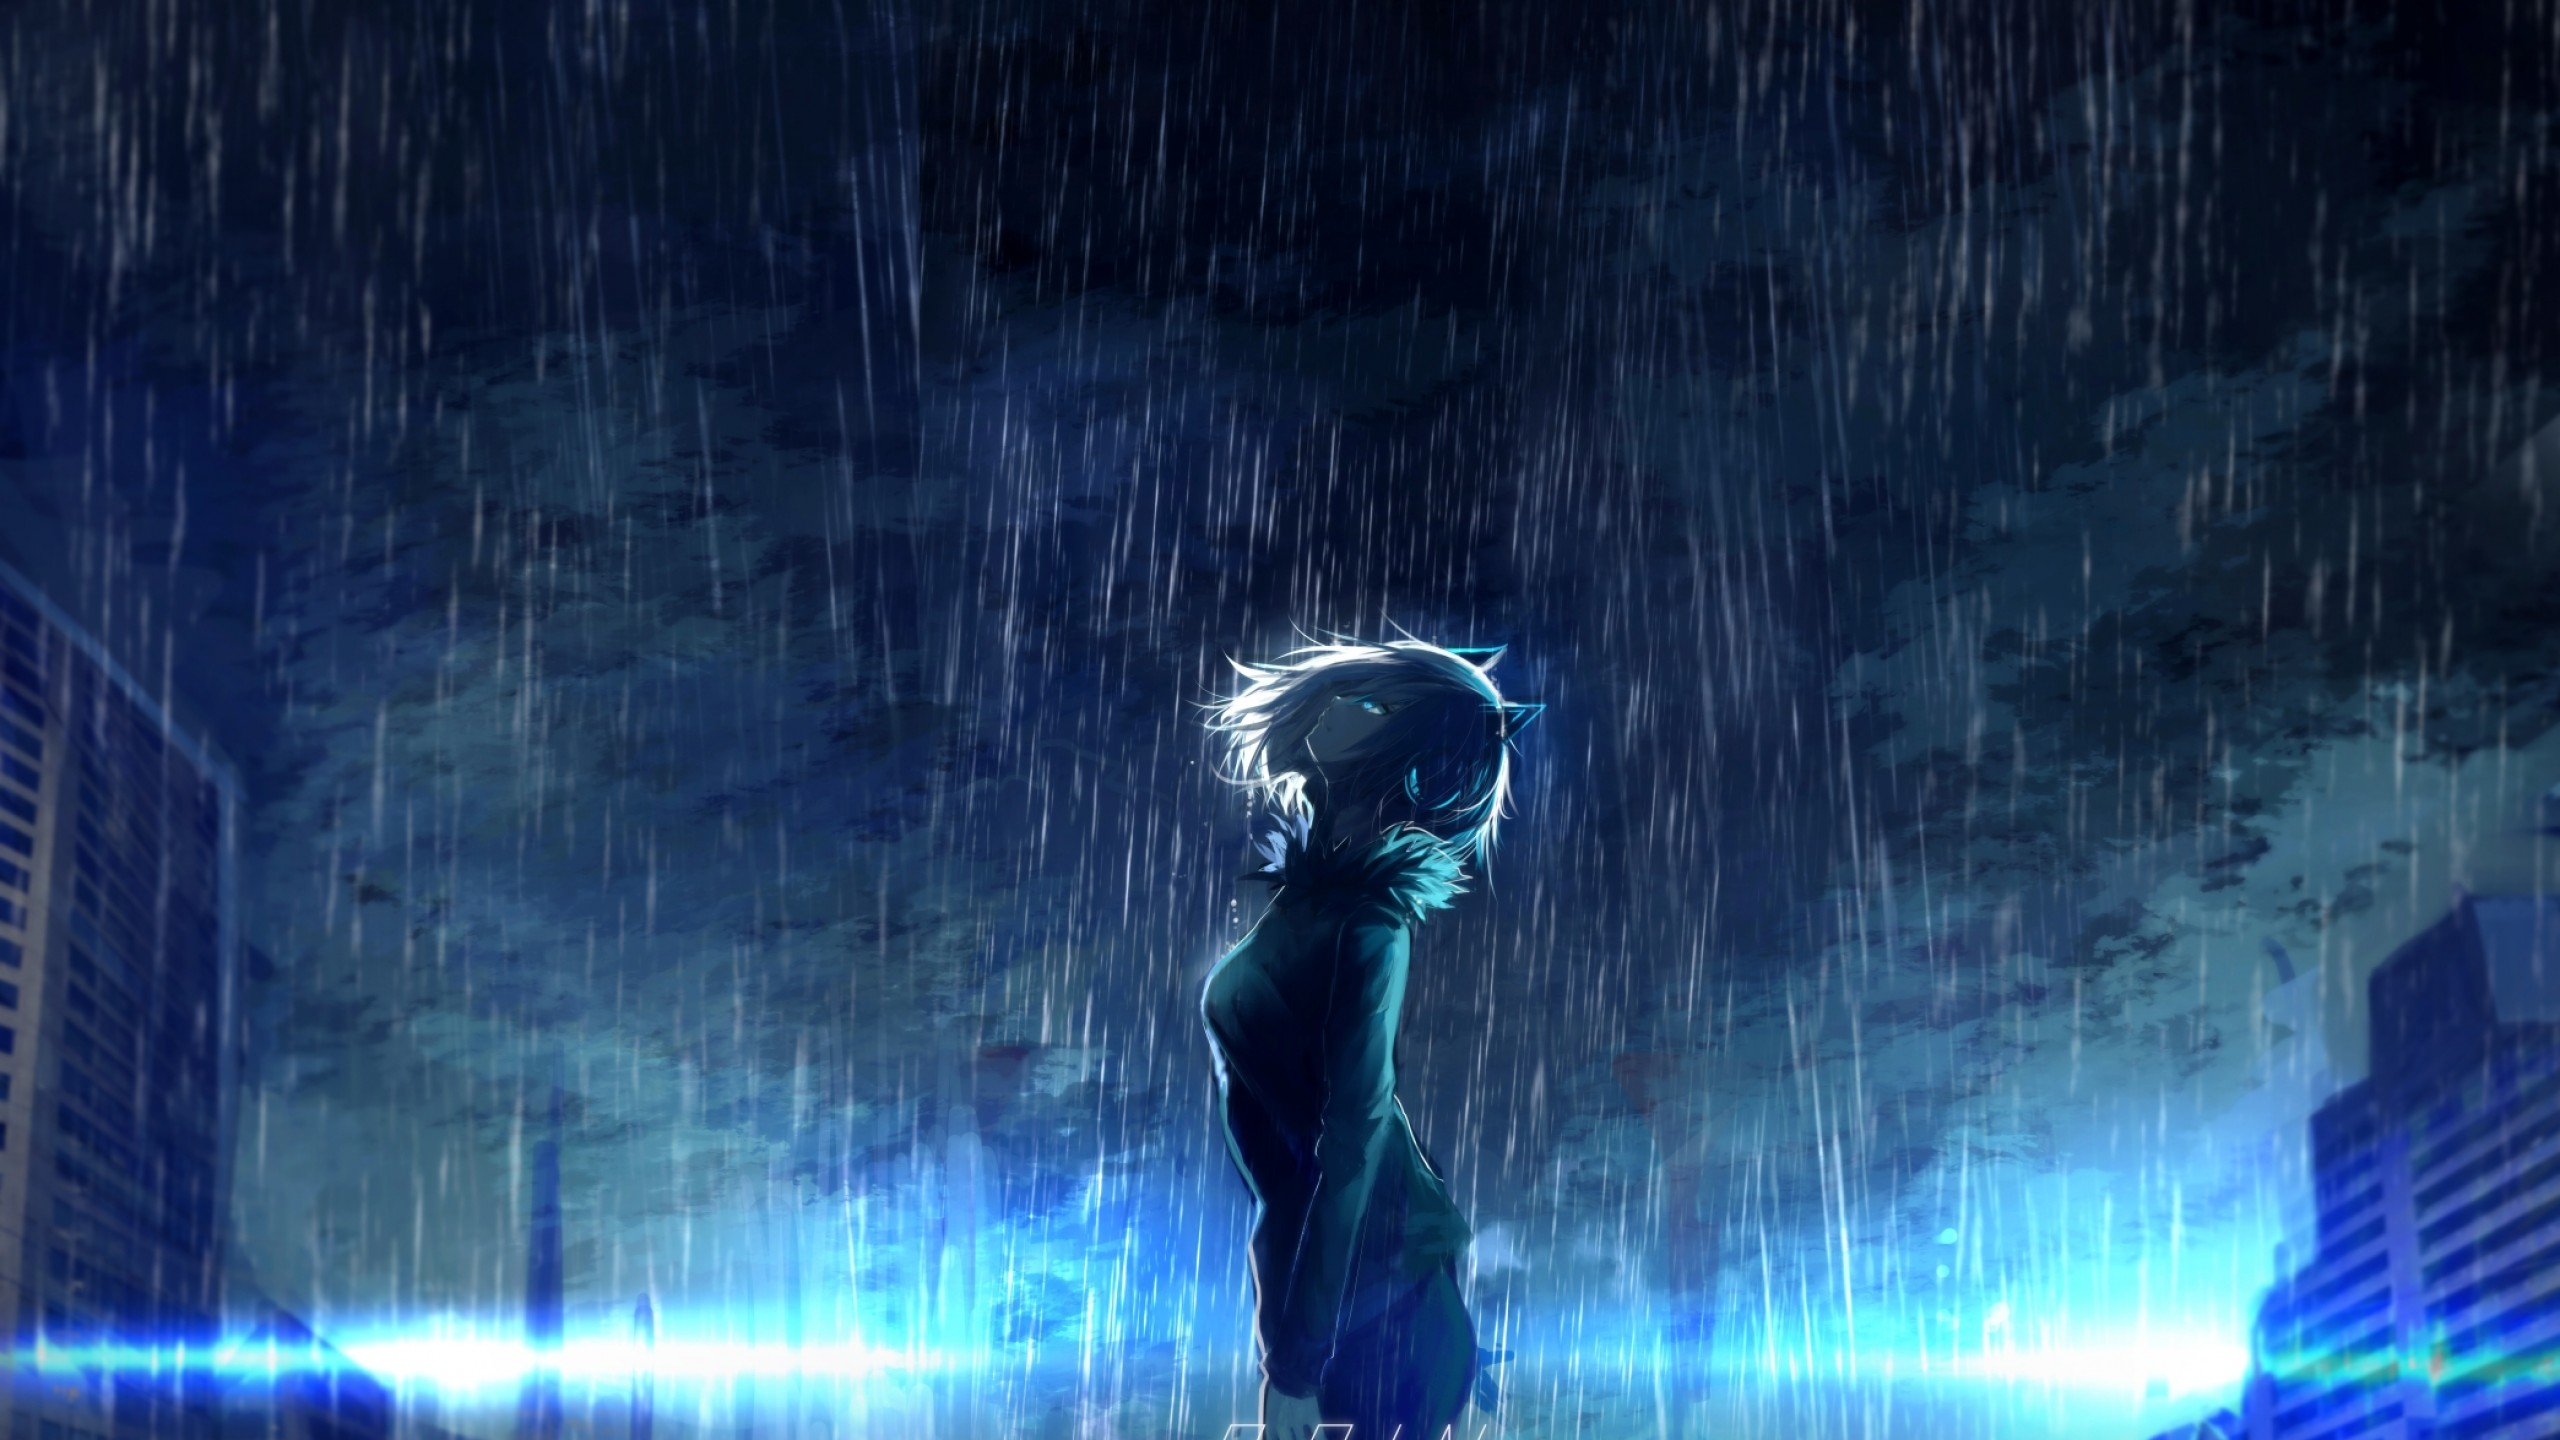 41 anime rain wallpapers on wallpapersafari - Anime rain wallpaper ...